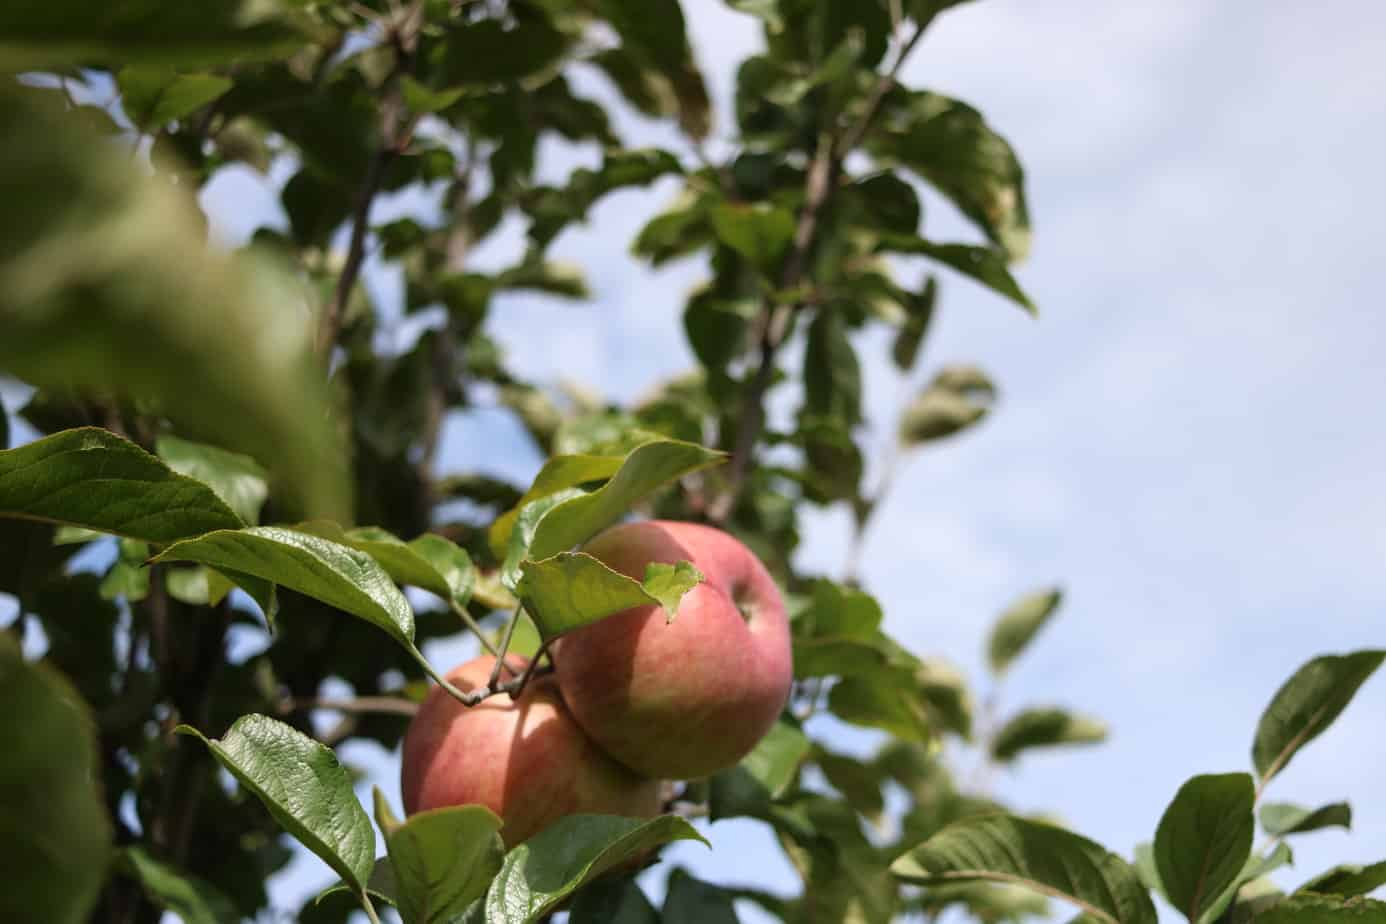 Spend a Day at Crane's Orchards, Restaurant, and Winery